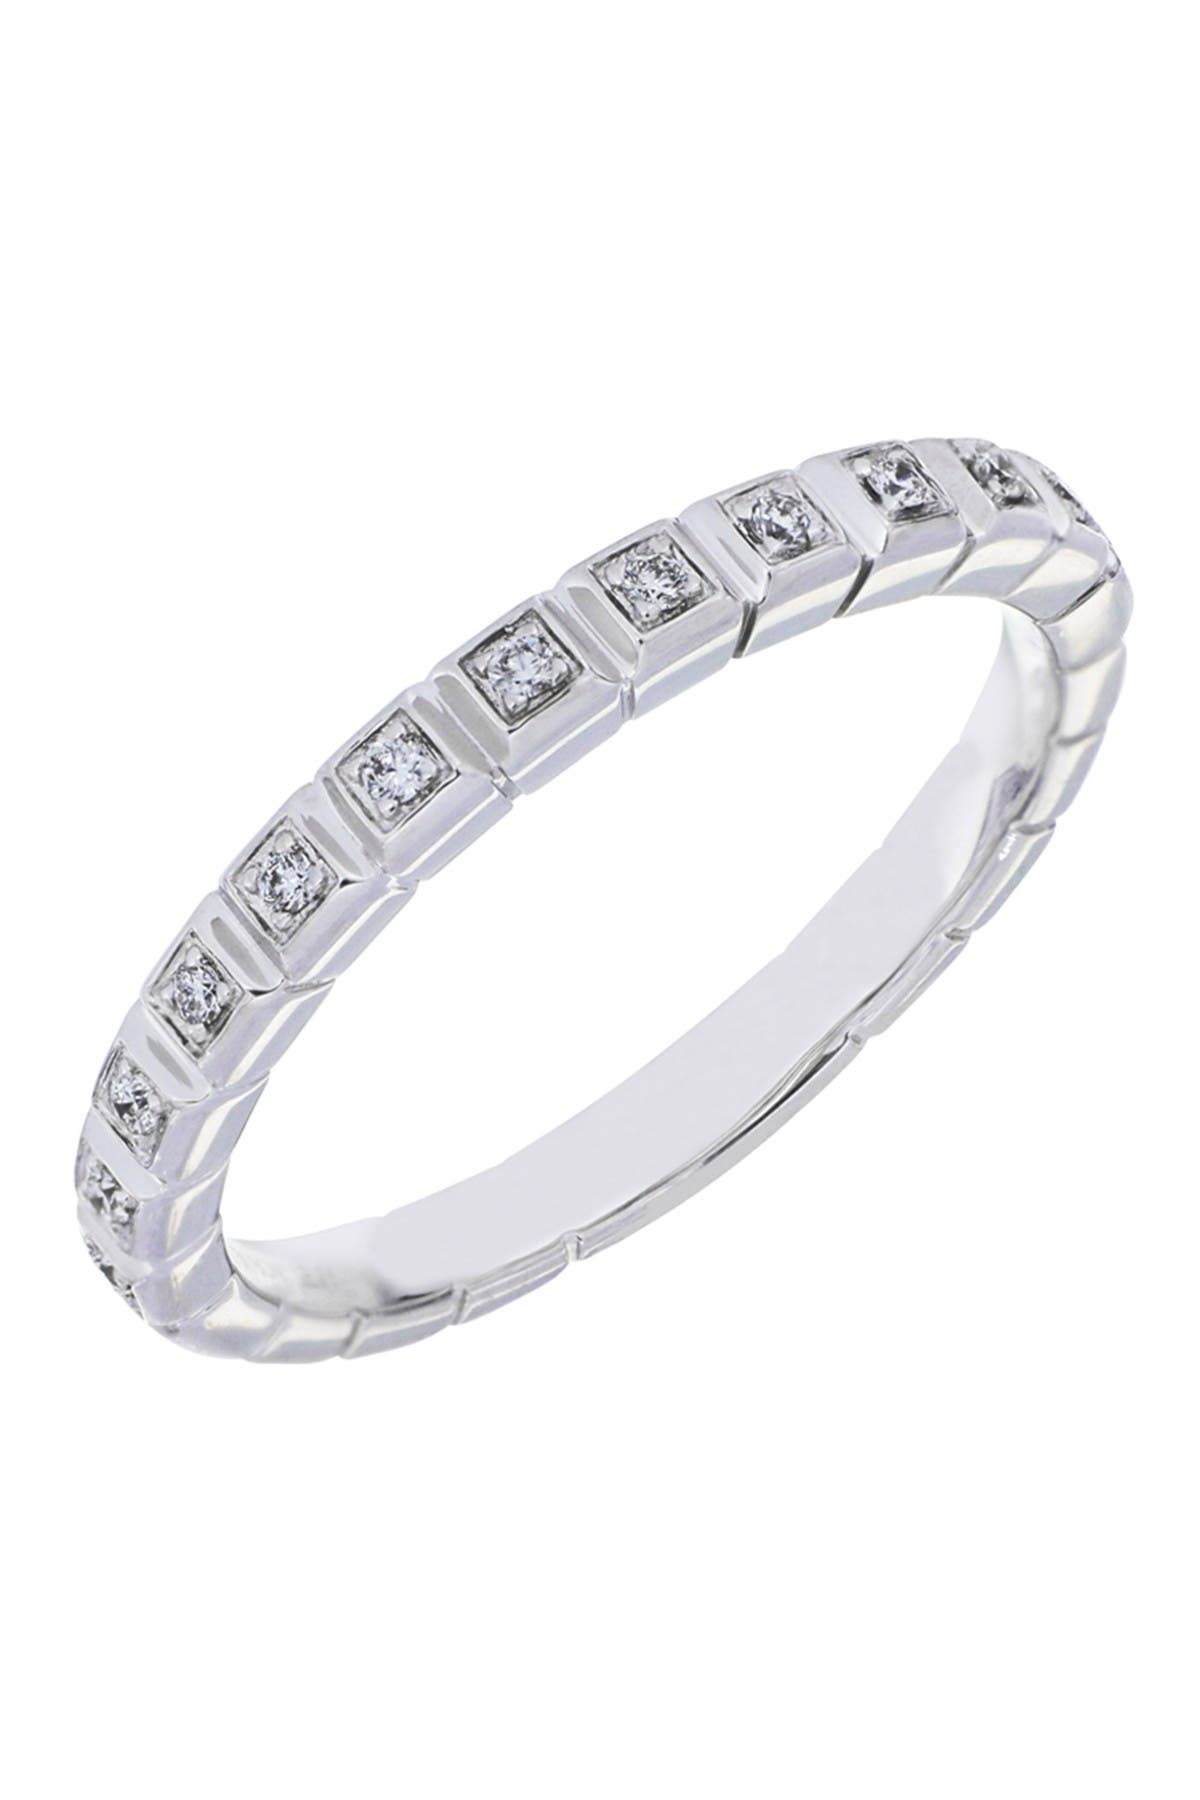 Image of Bony Levy 18K White Gold Diamond Stacking Ring - 0.07 ctw